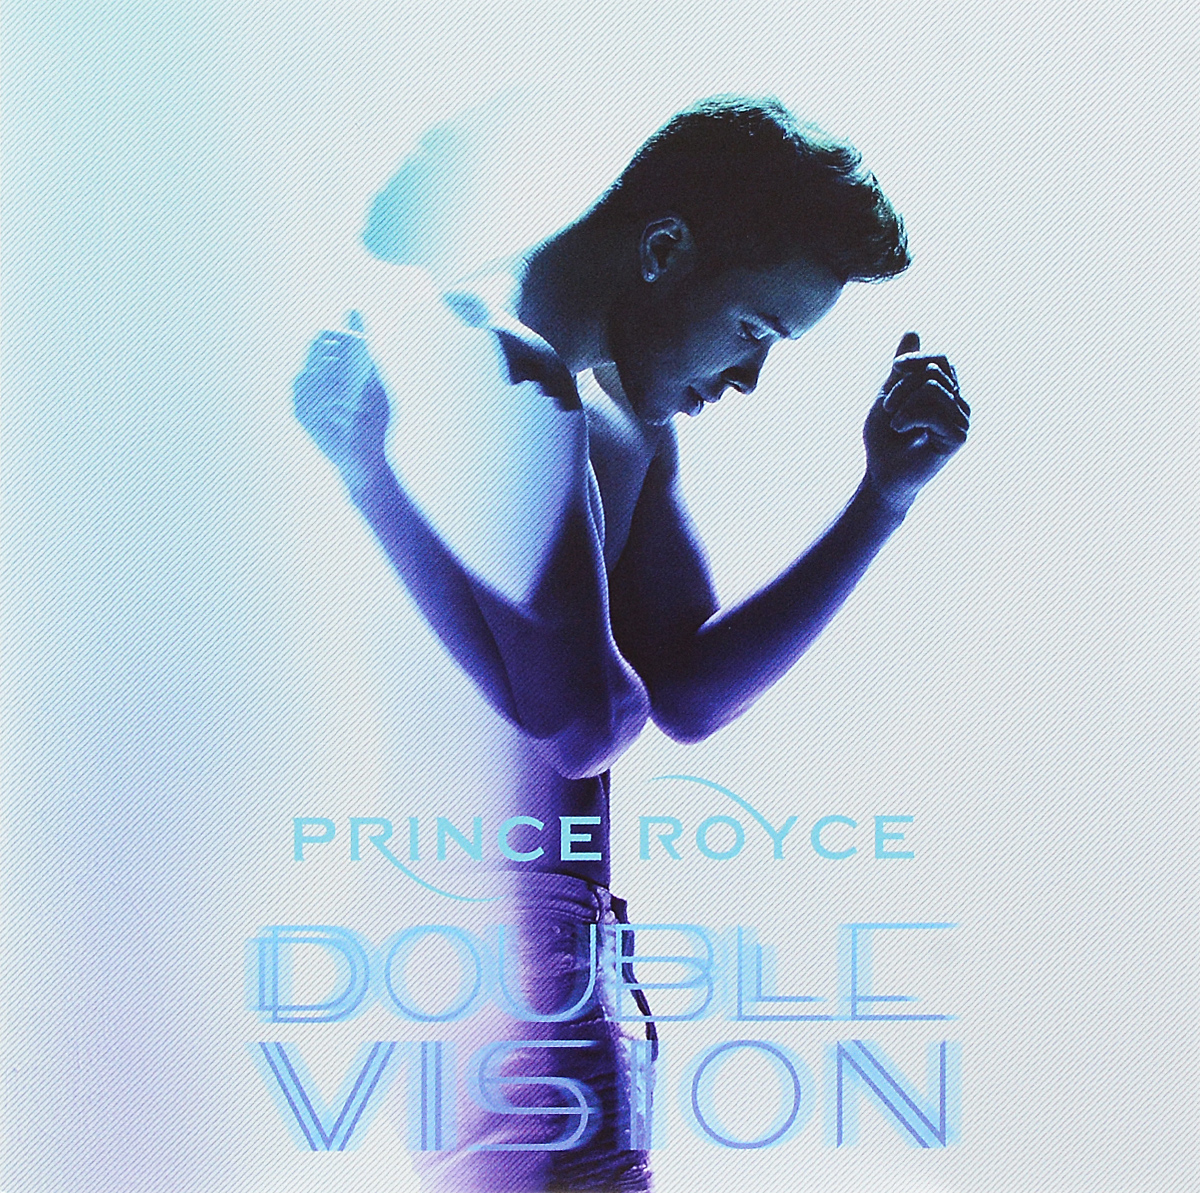 Prince Royce Prince Royce. Double Vision. Deluxe Edition prince prince dirty mind